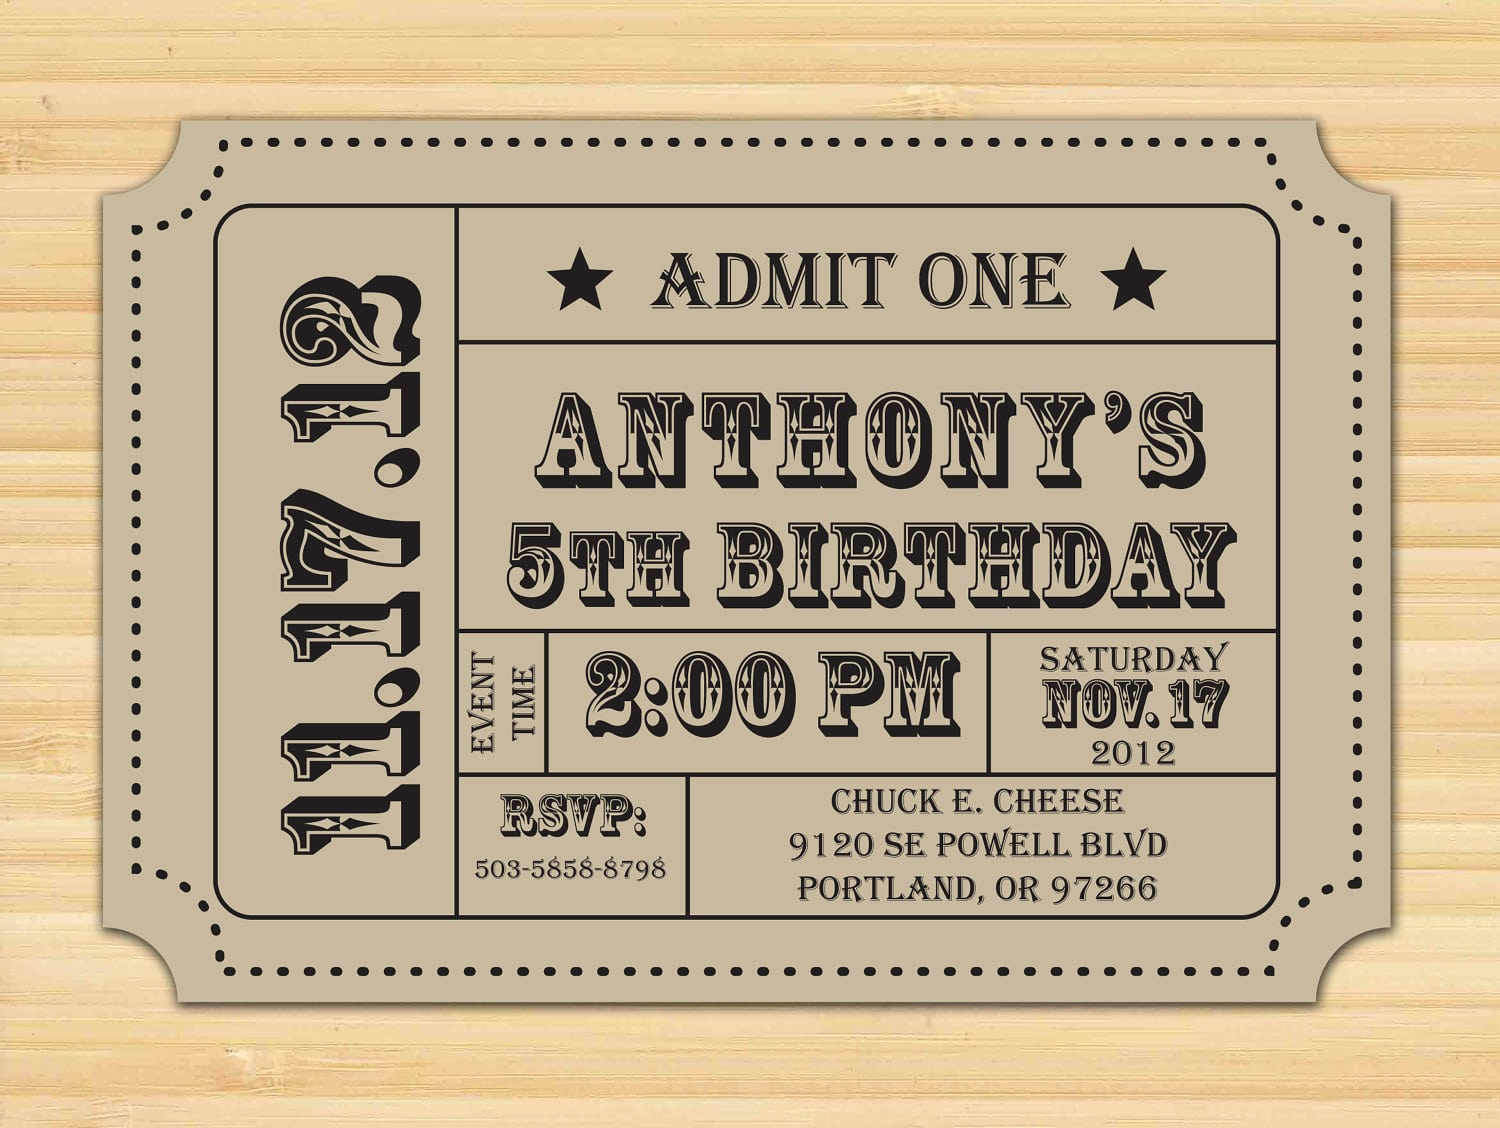 Free Ticket Invitation Template Awesome Free Printable Ticket Stub Invitation